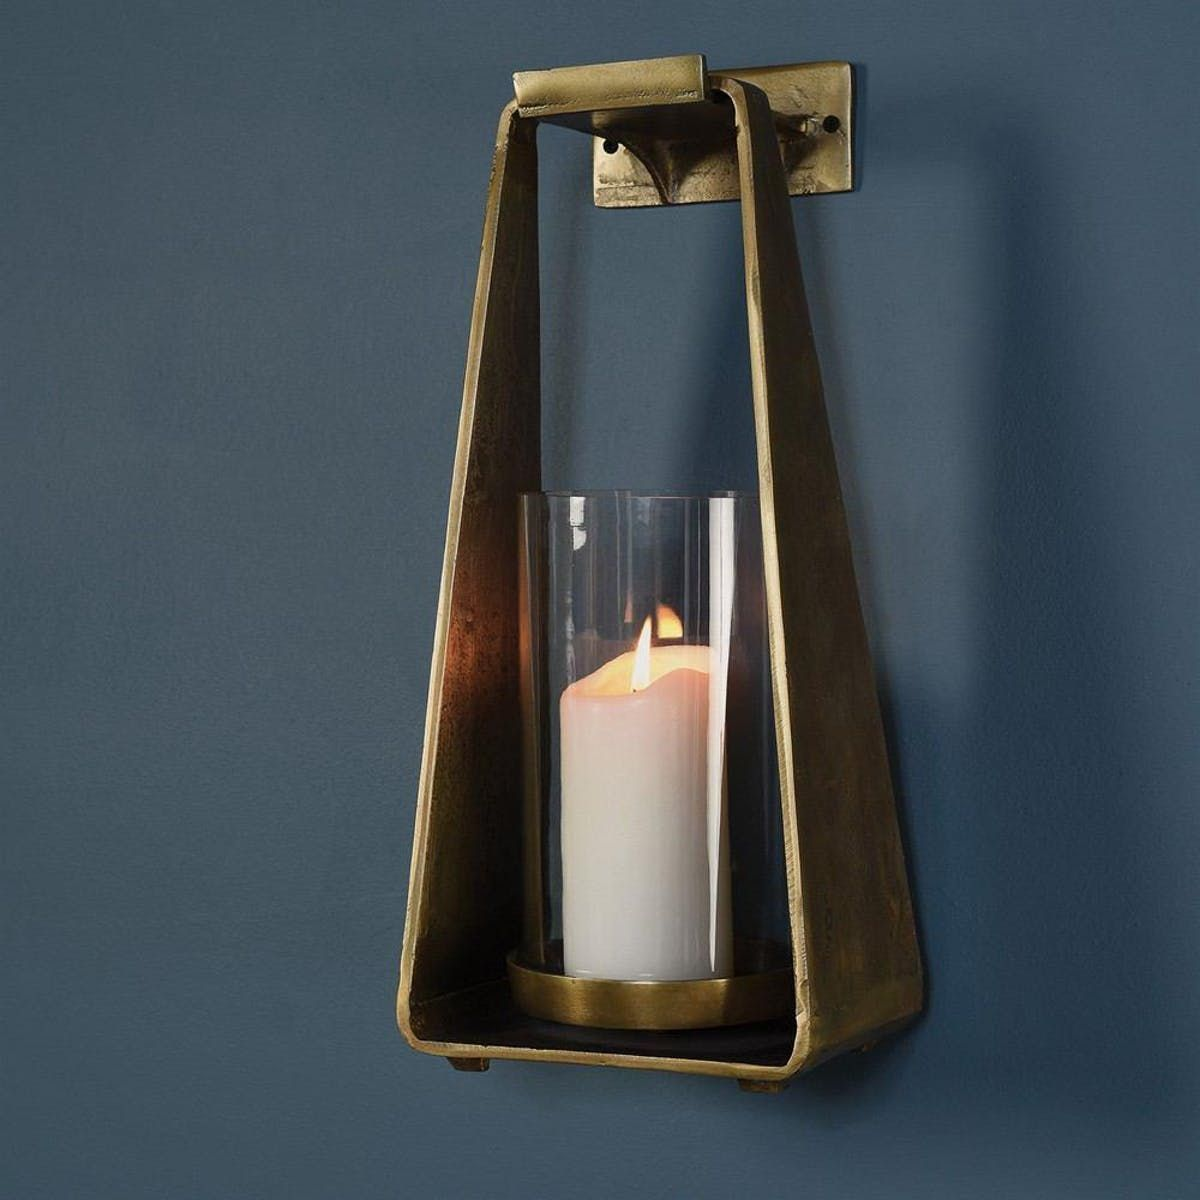 Homart Taylor Sconce With Wall Hook Brass Candle Sconces Large Candle Sconces Candle Wall Sconces